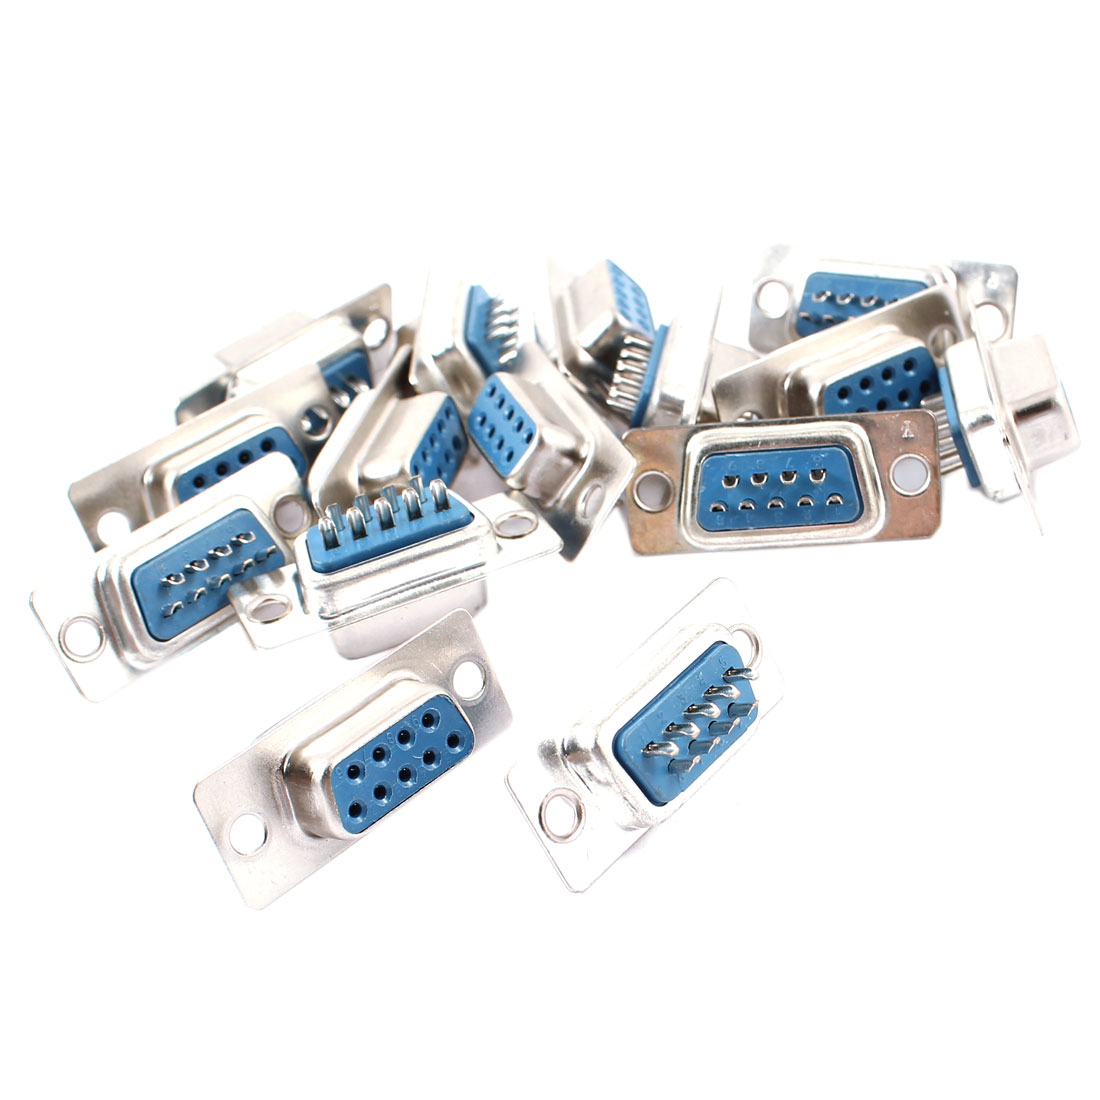 15 Pcs DB9 DB-9 RS232 Female 9-pin Connector VGA Socket Adapter Interface